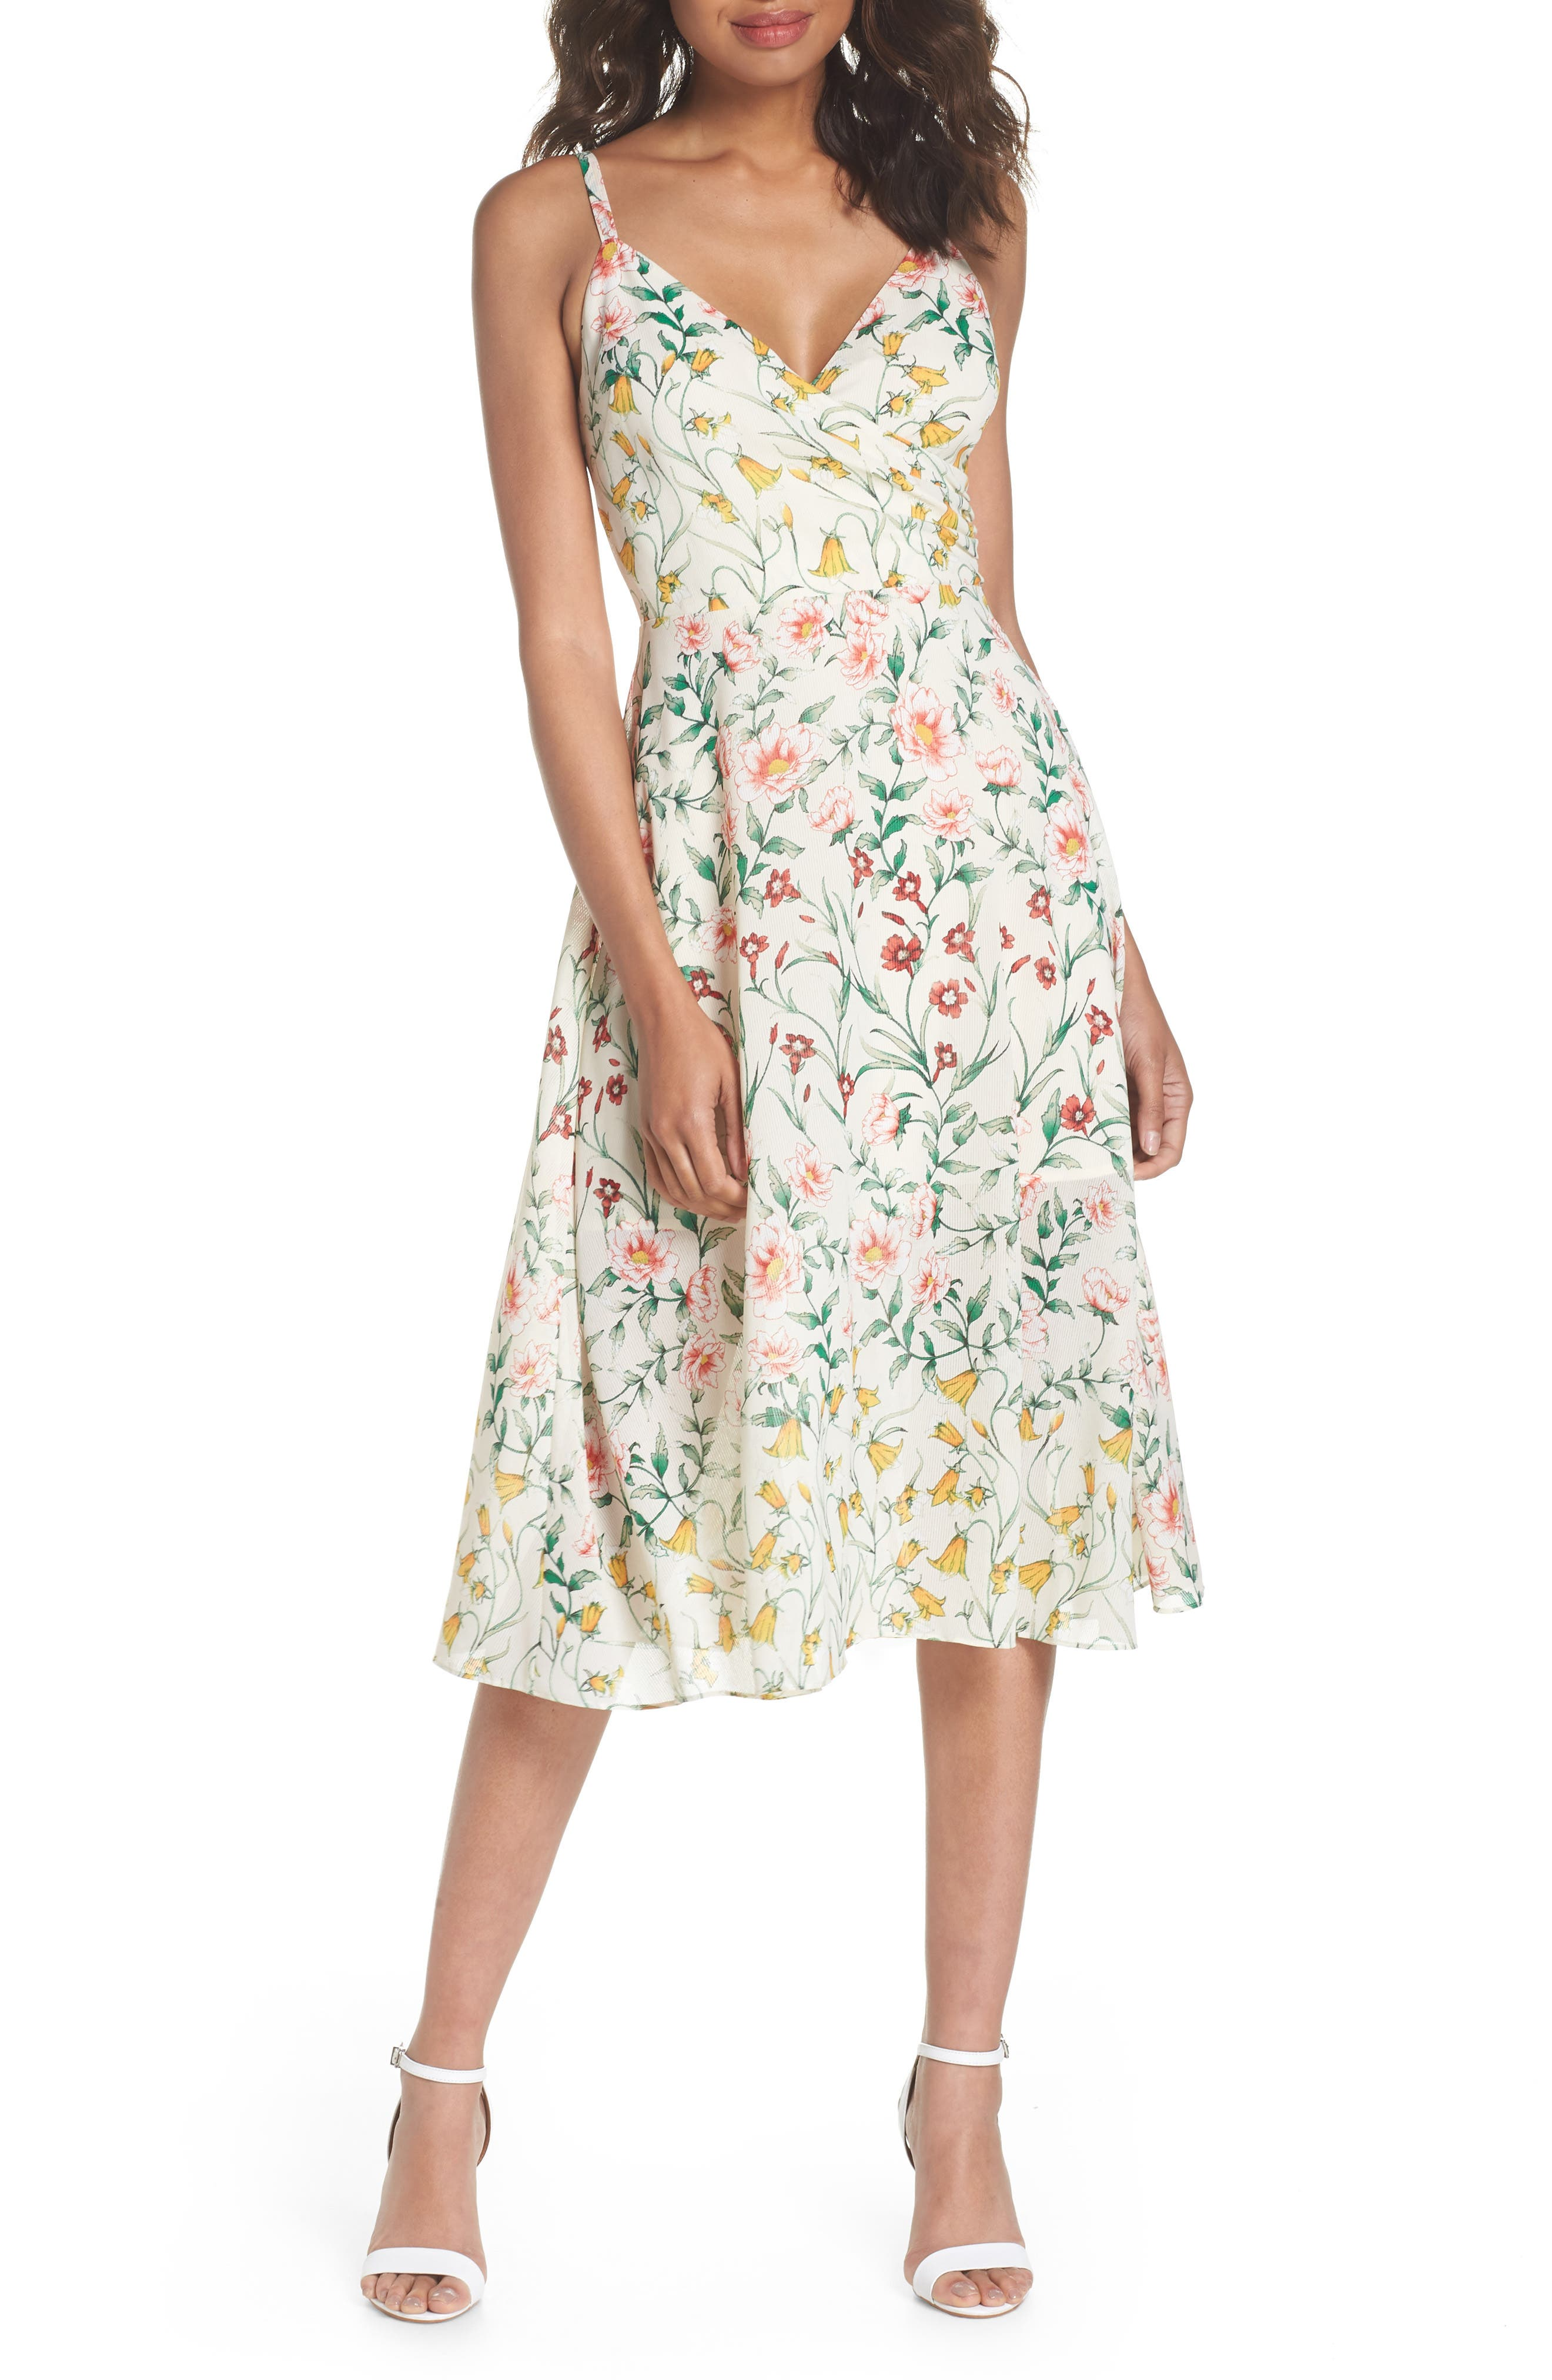 Ali & Jay Rose Colored Glasses Floral Fit & Flare Midi Dress